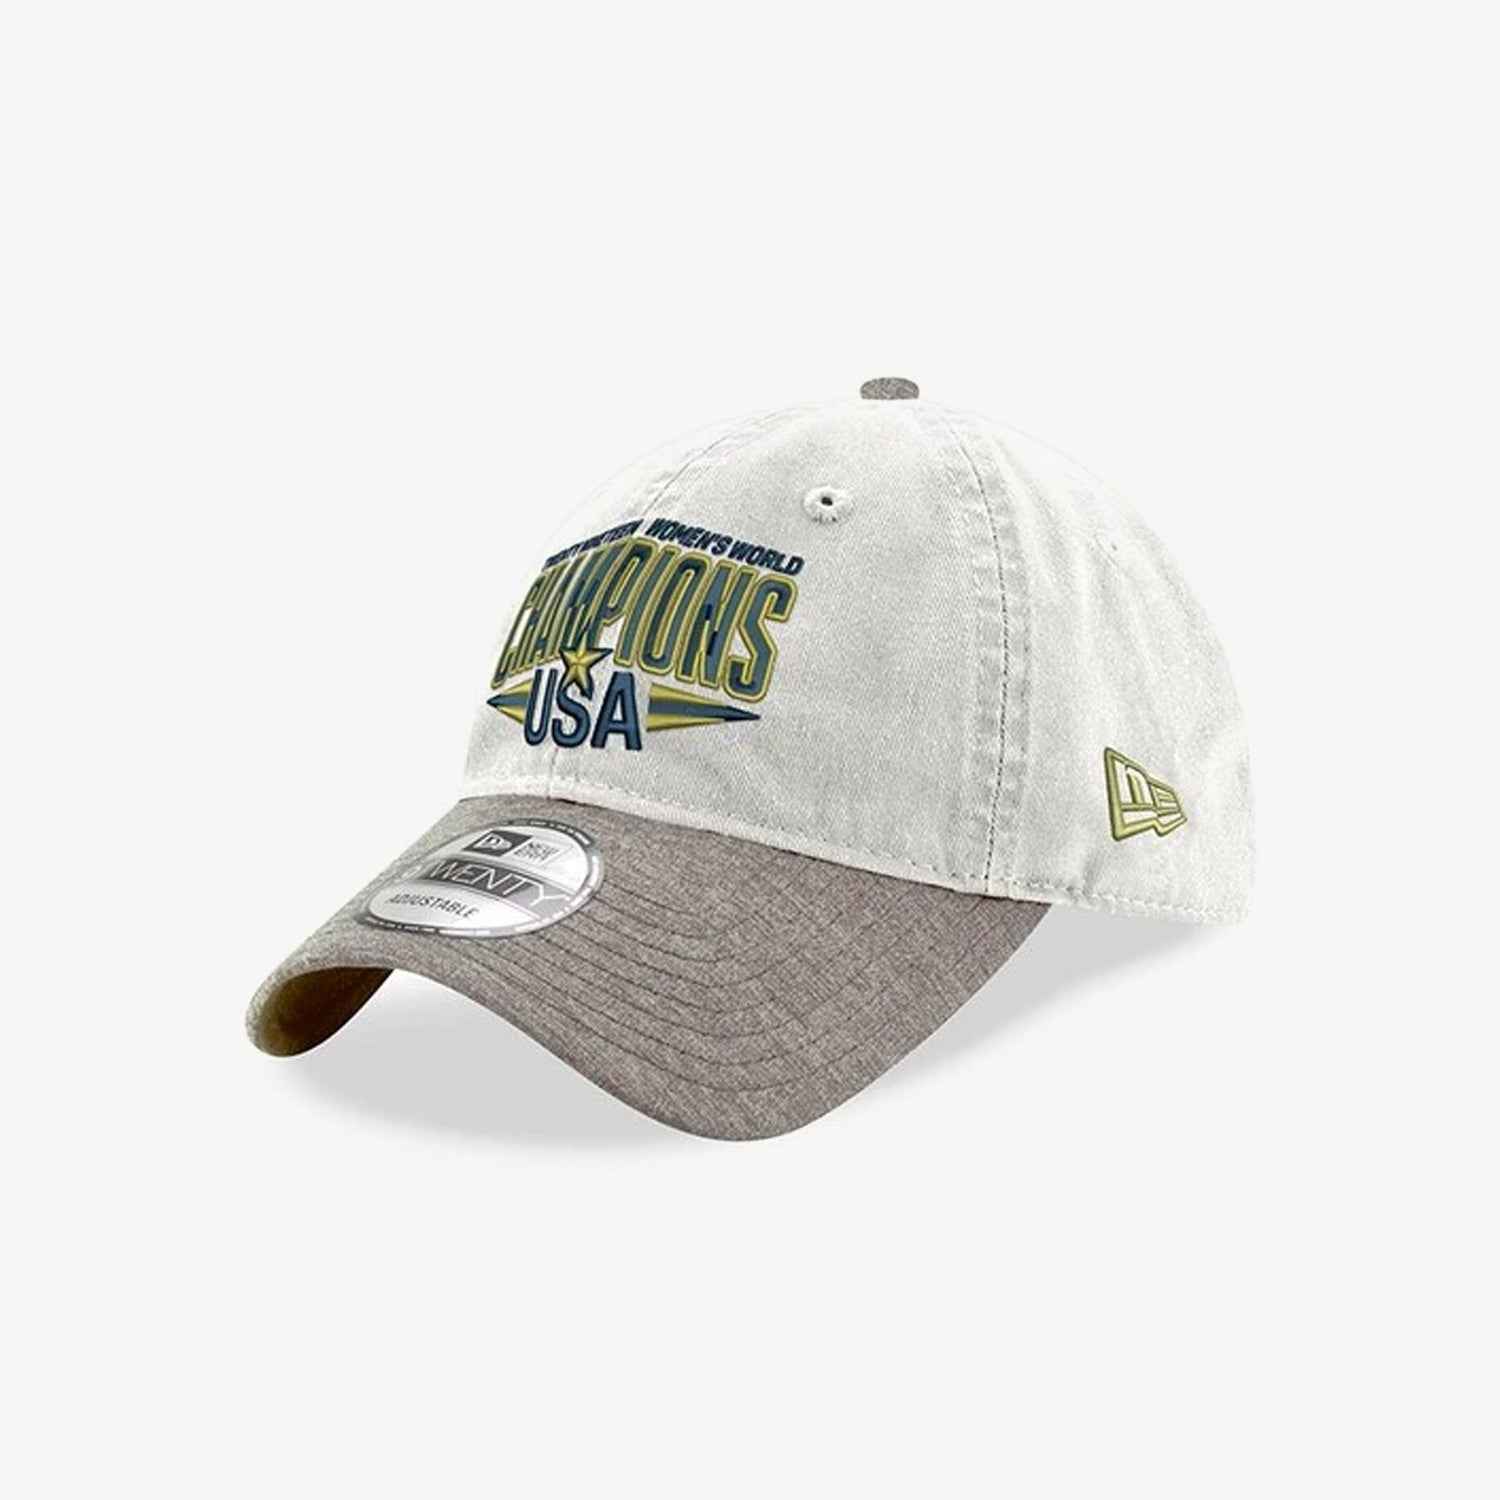 USA Women's 4-Star Player Adjustable Hat